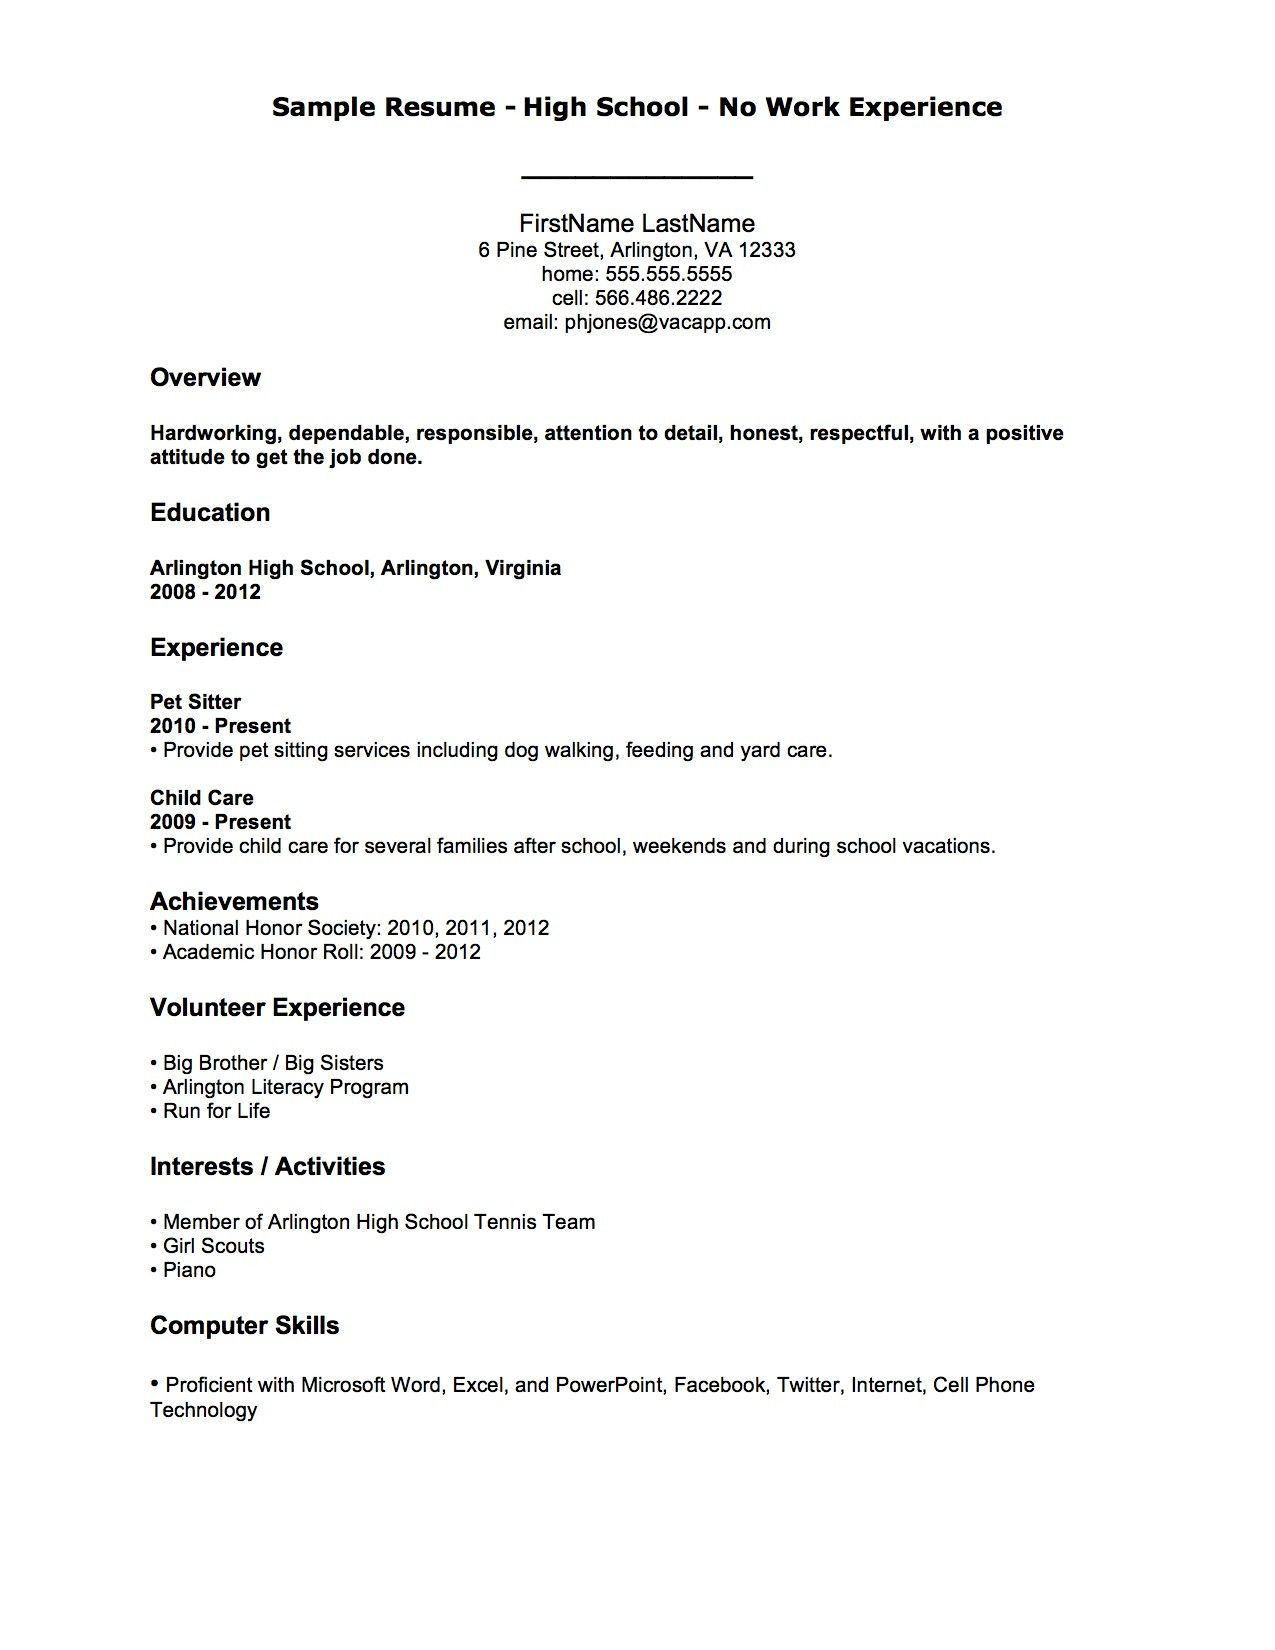 Resume Job Experience How To Write A Resume For A Job With No Experience  Google Search